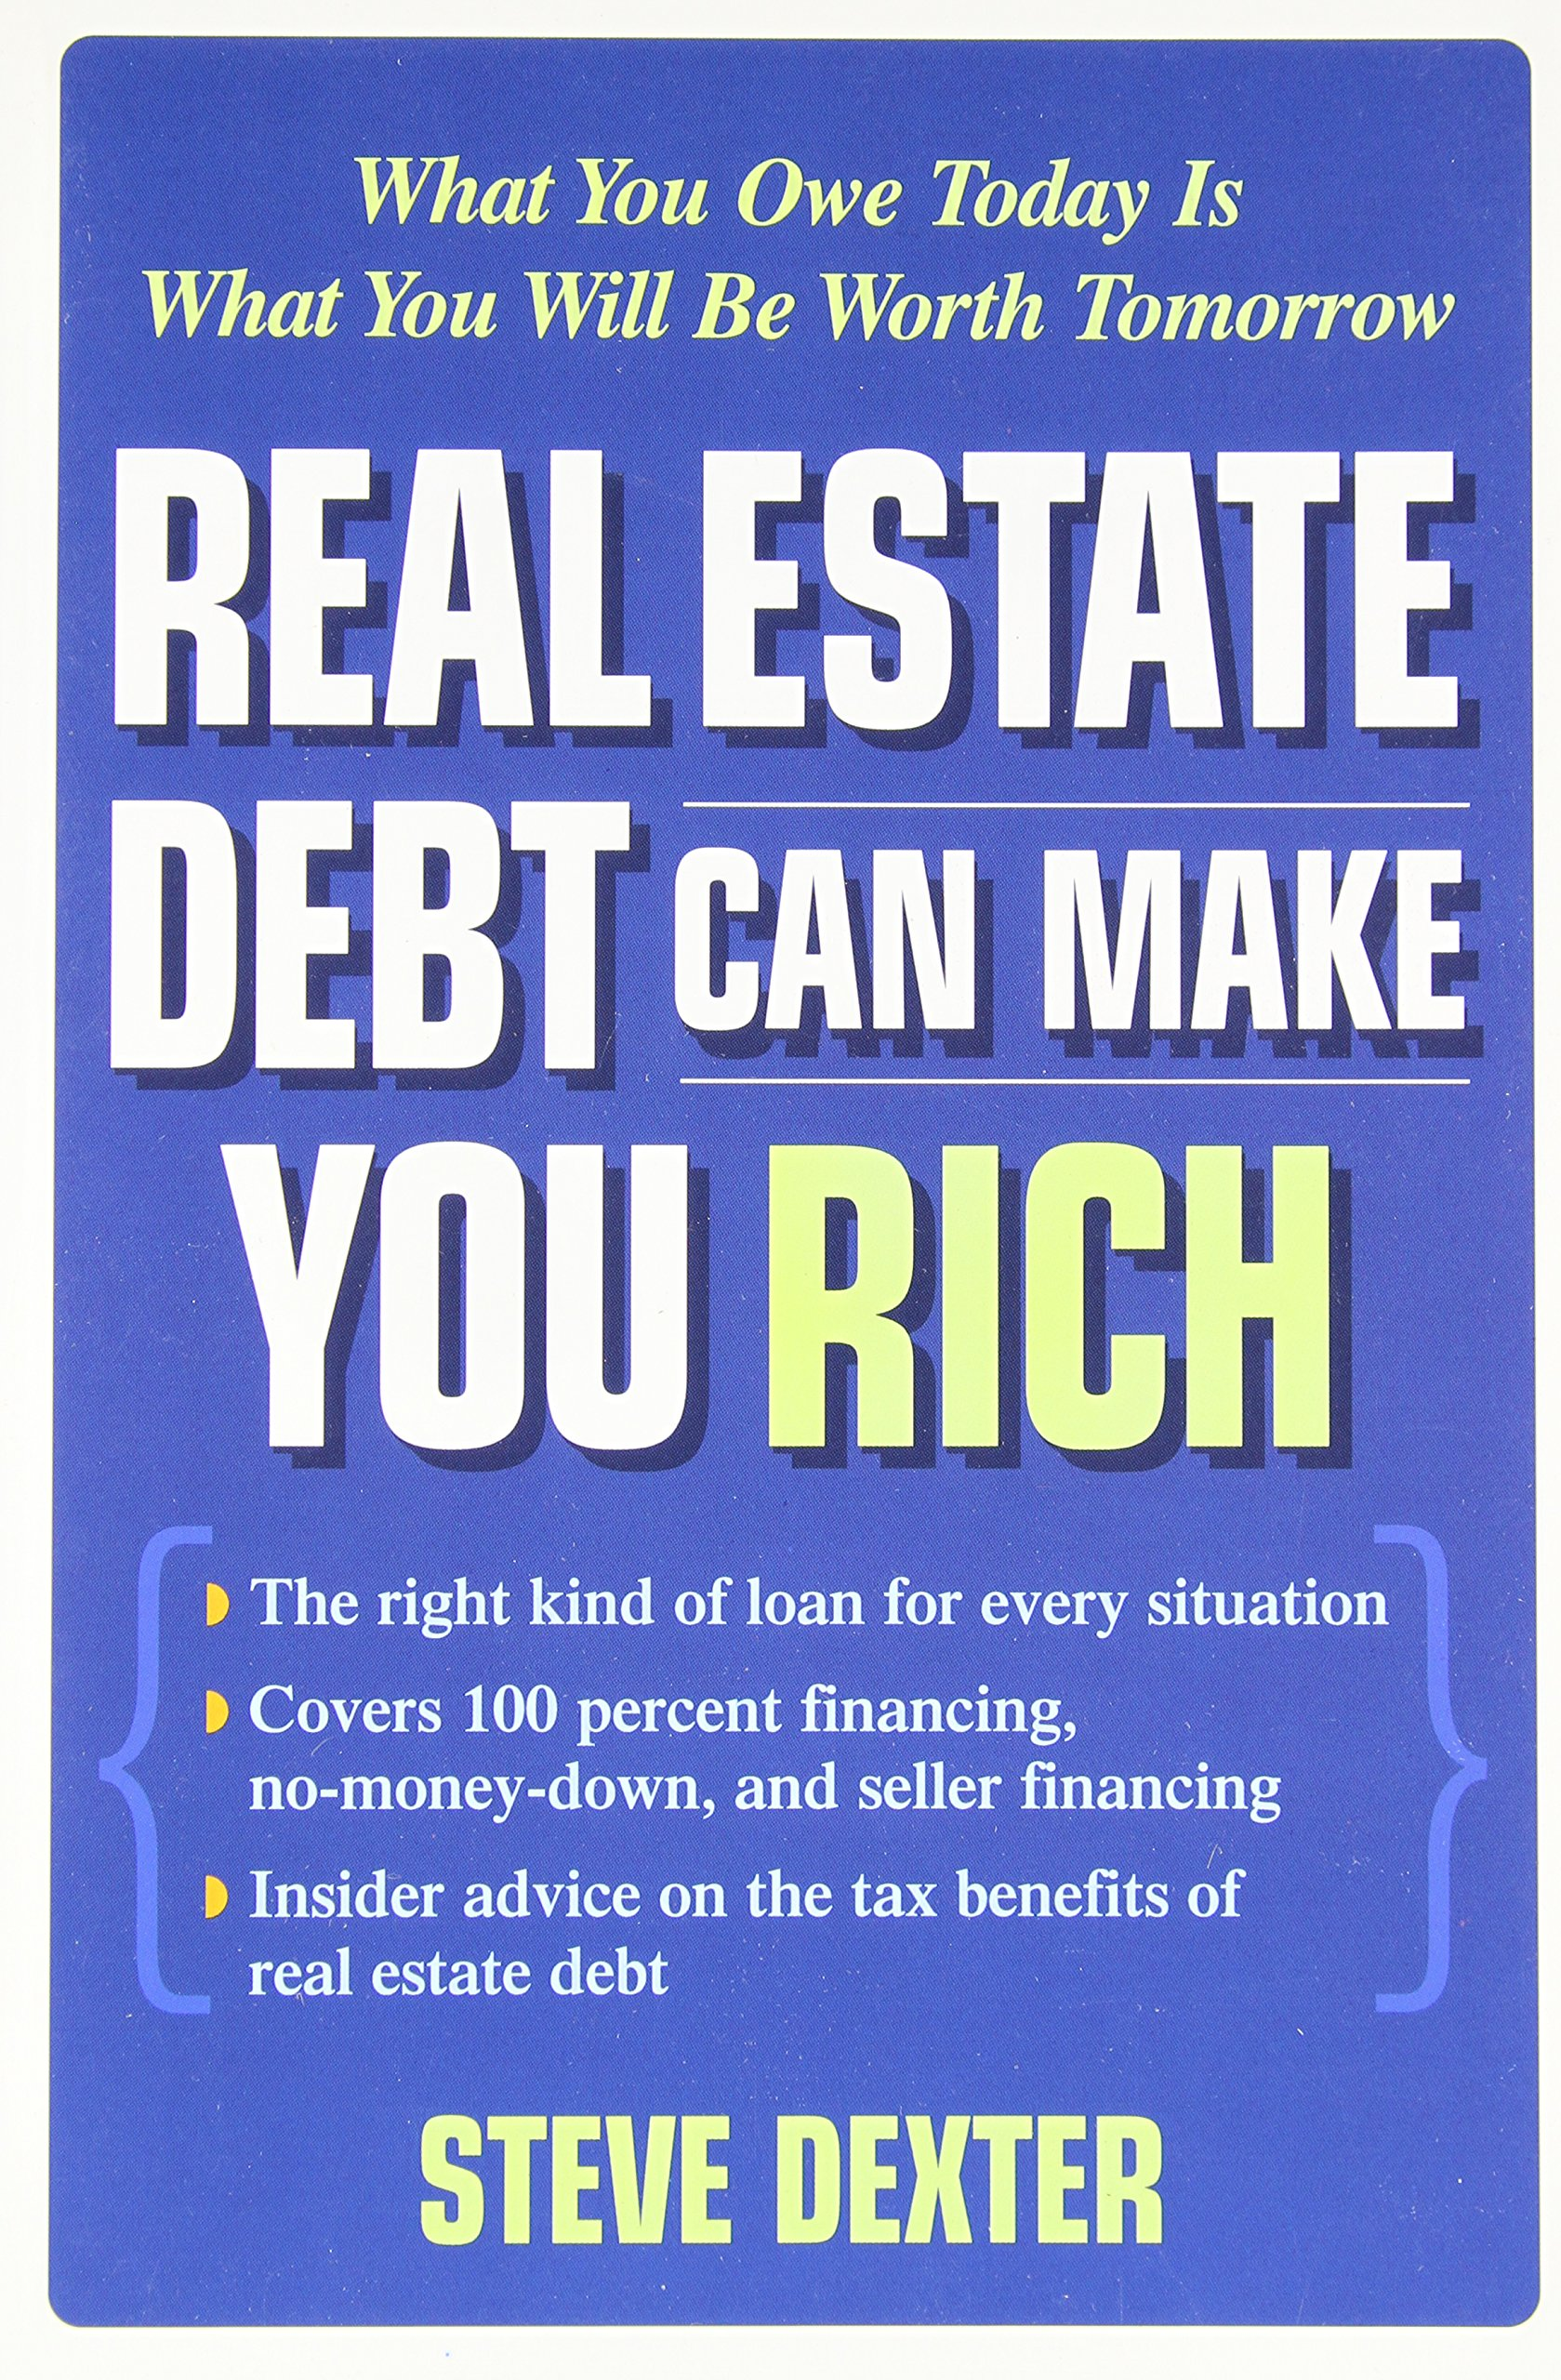 Real Estate Debt Can Make You Rich: What You Owe Today Is What You Will Be Worth Tomorrow